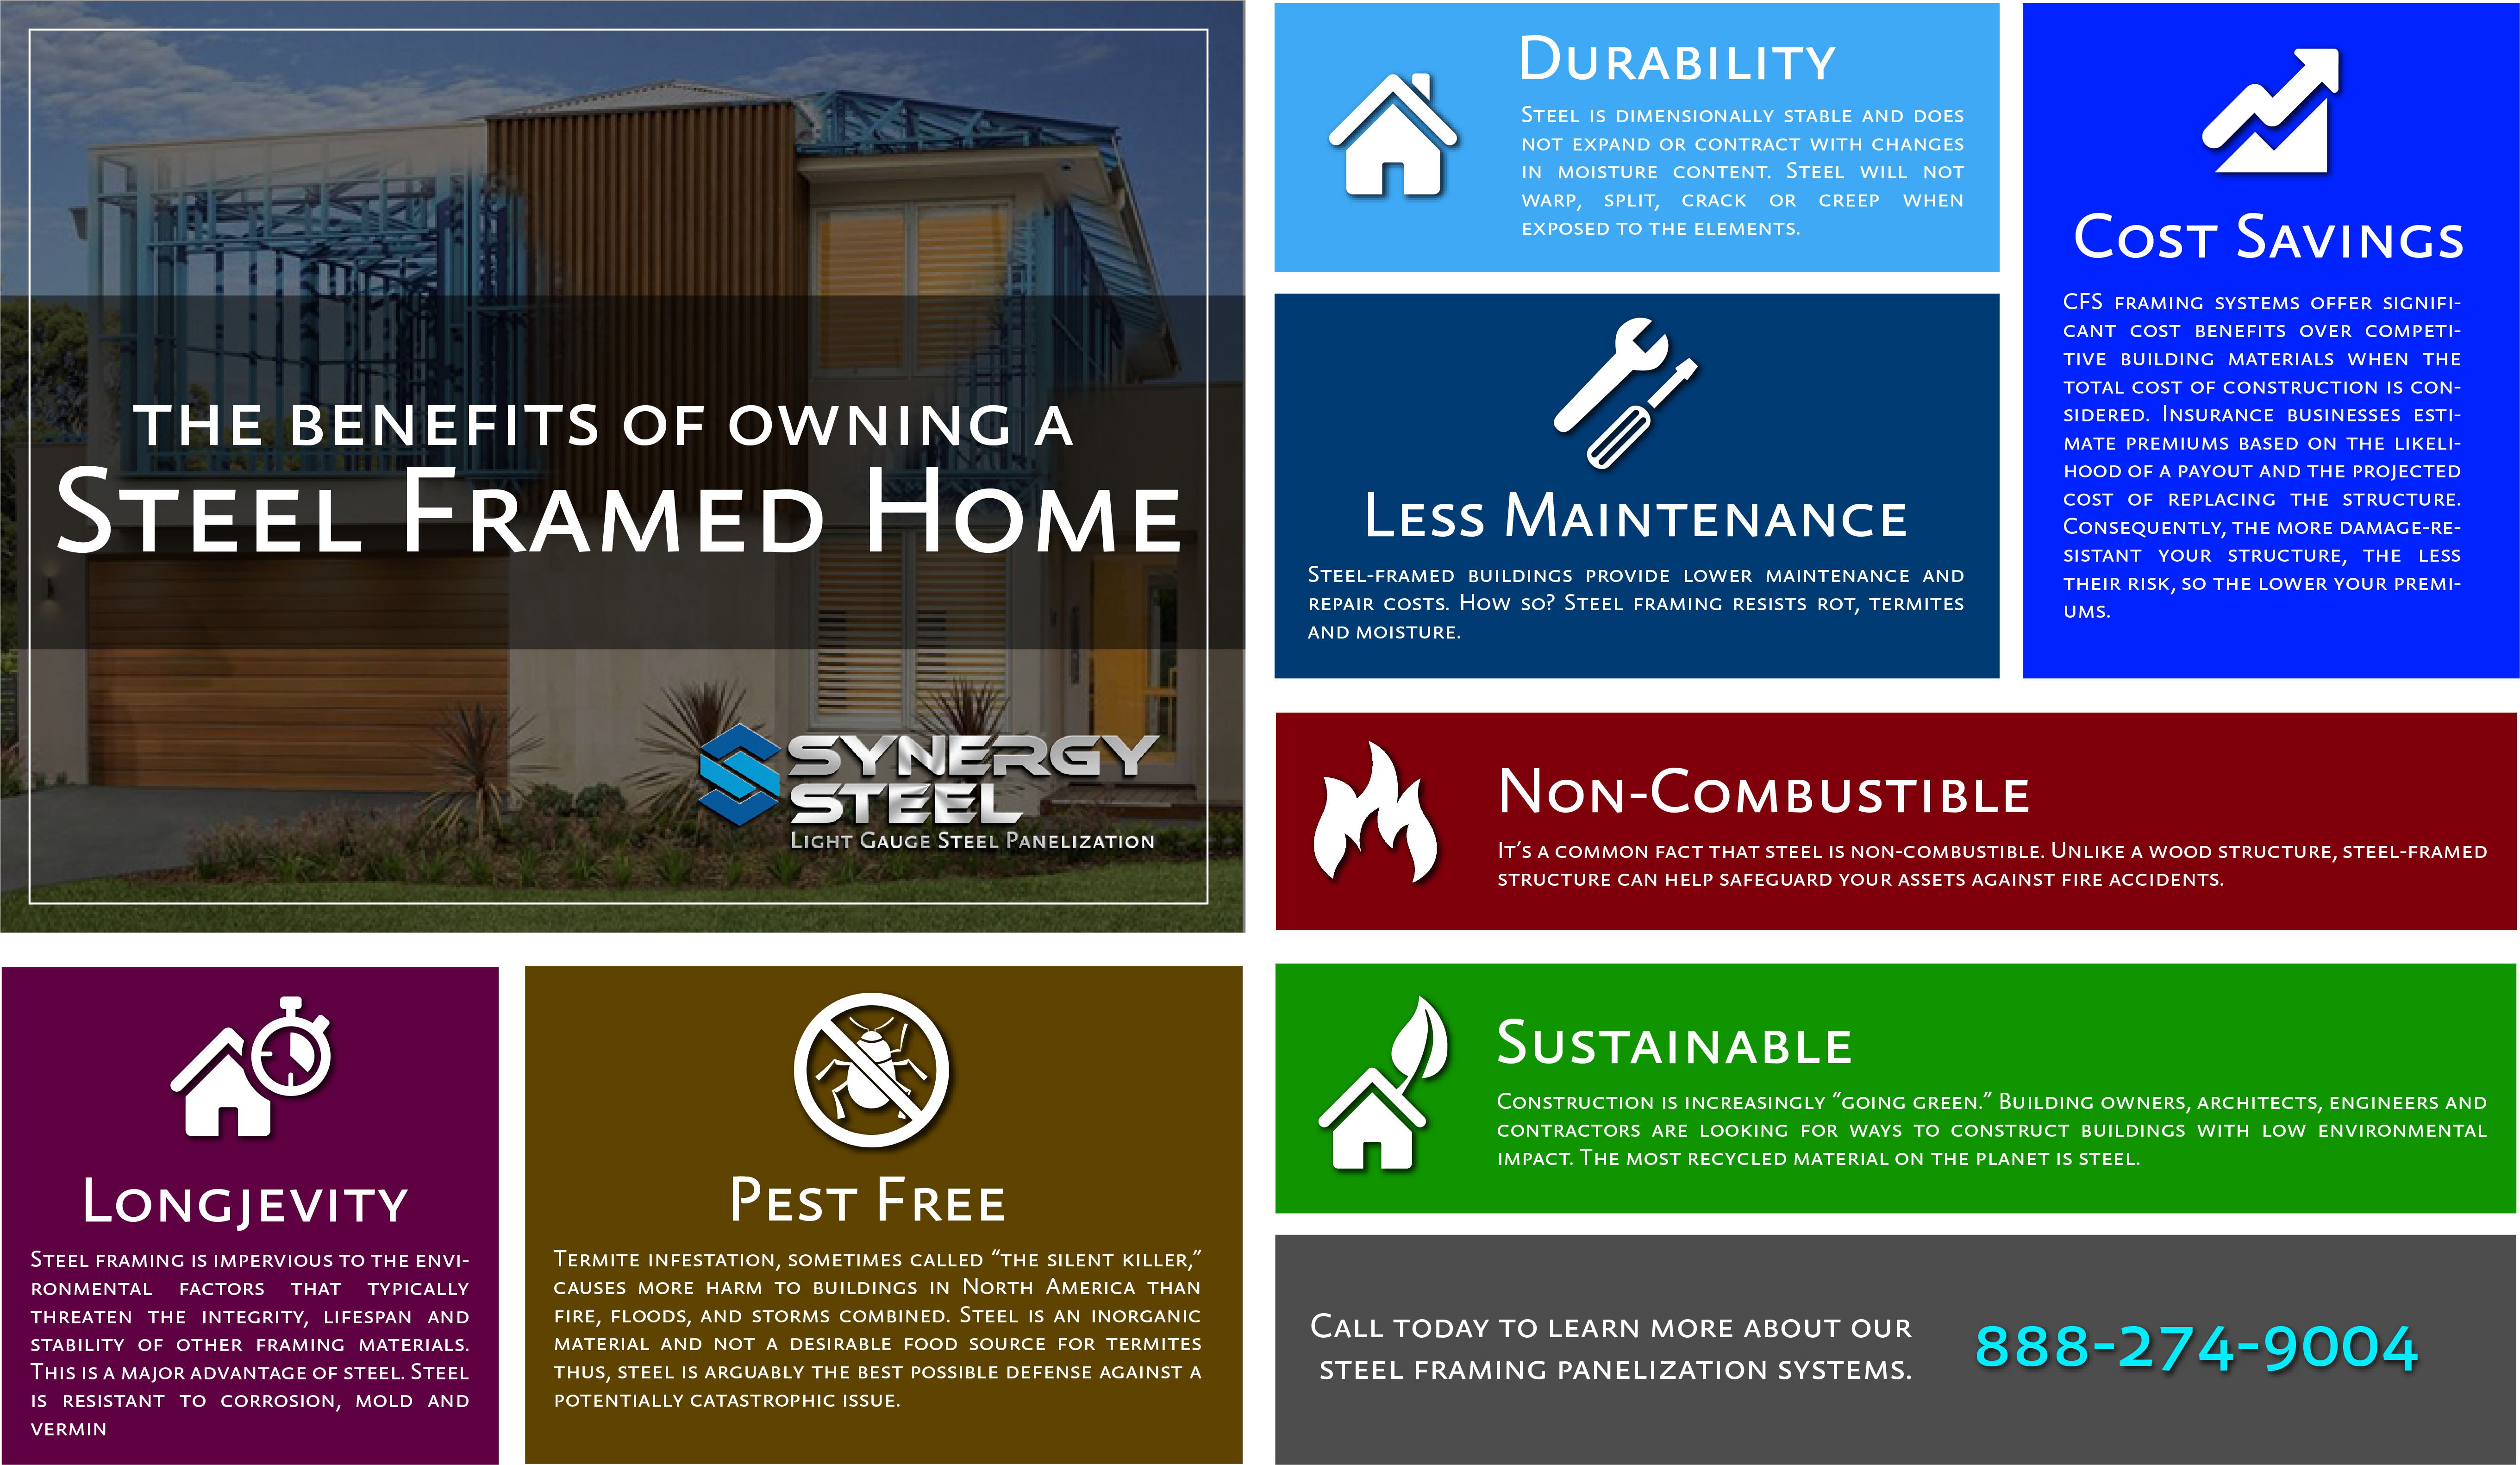 Benefits of Owning a Steel Framed Home